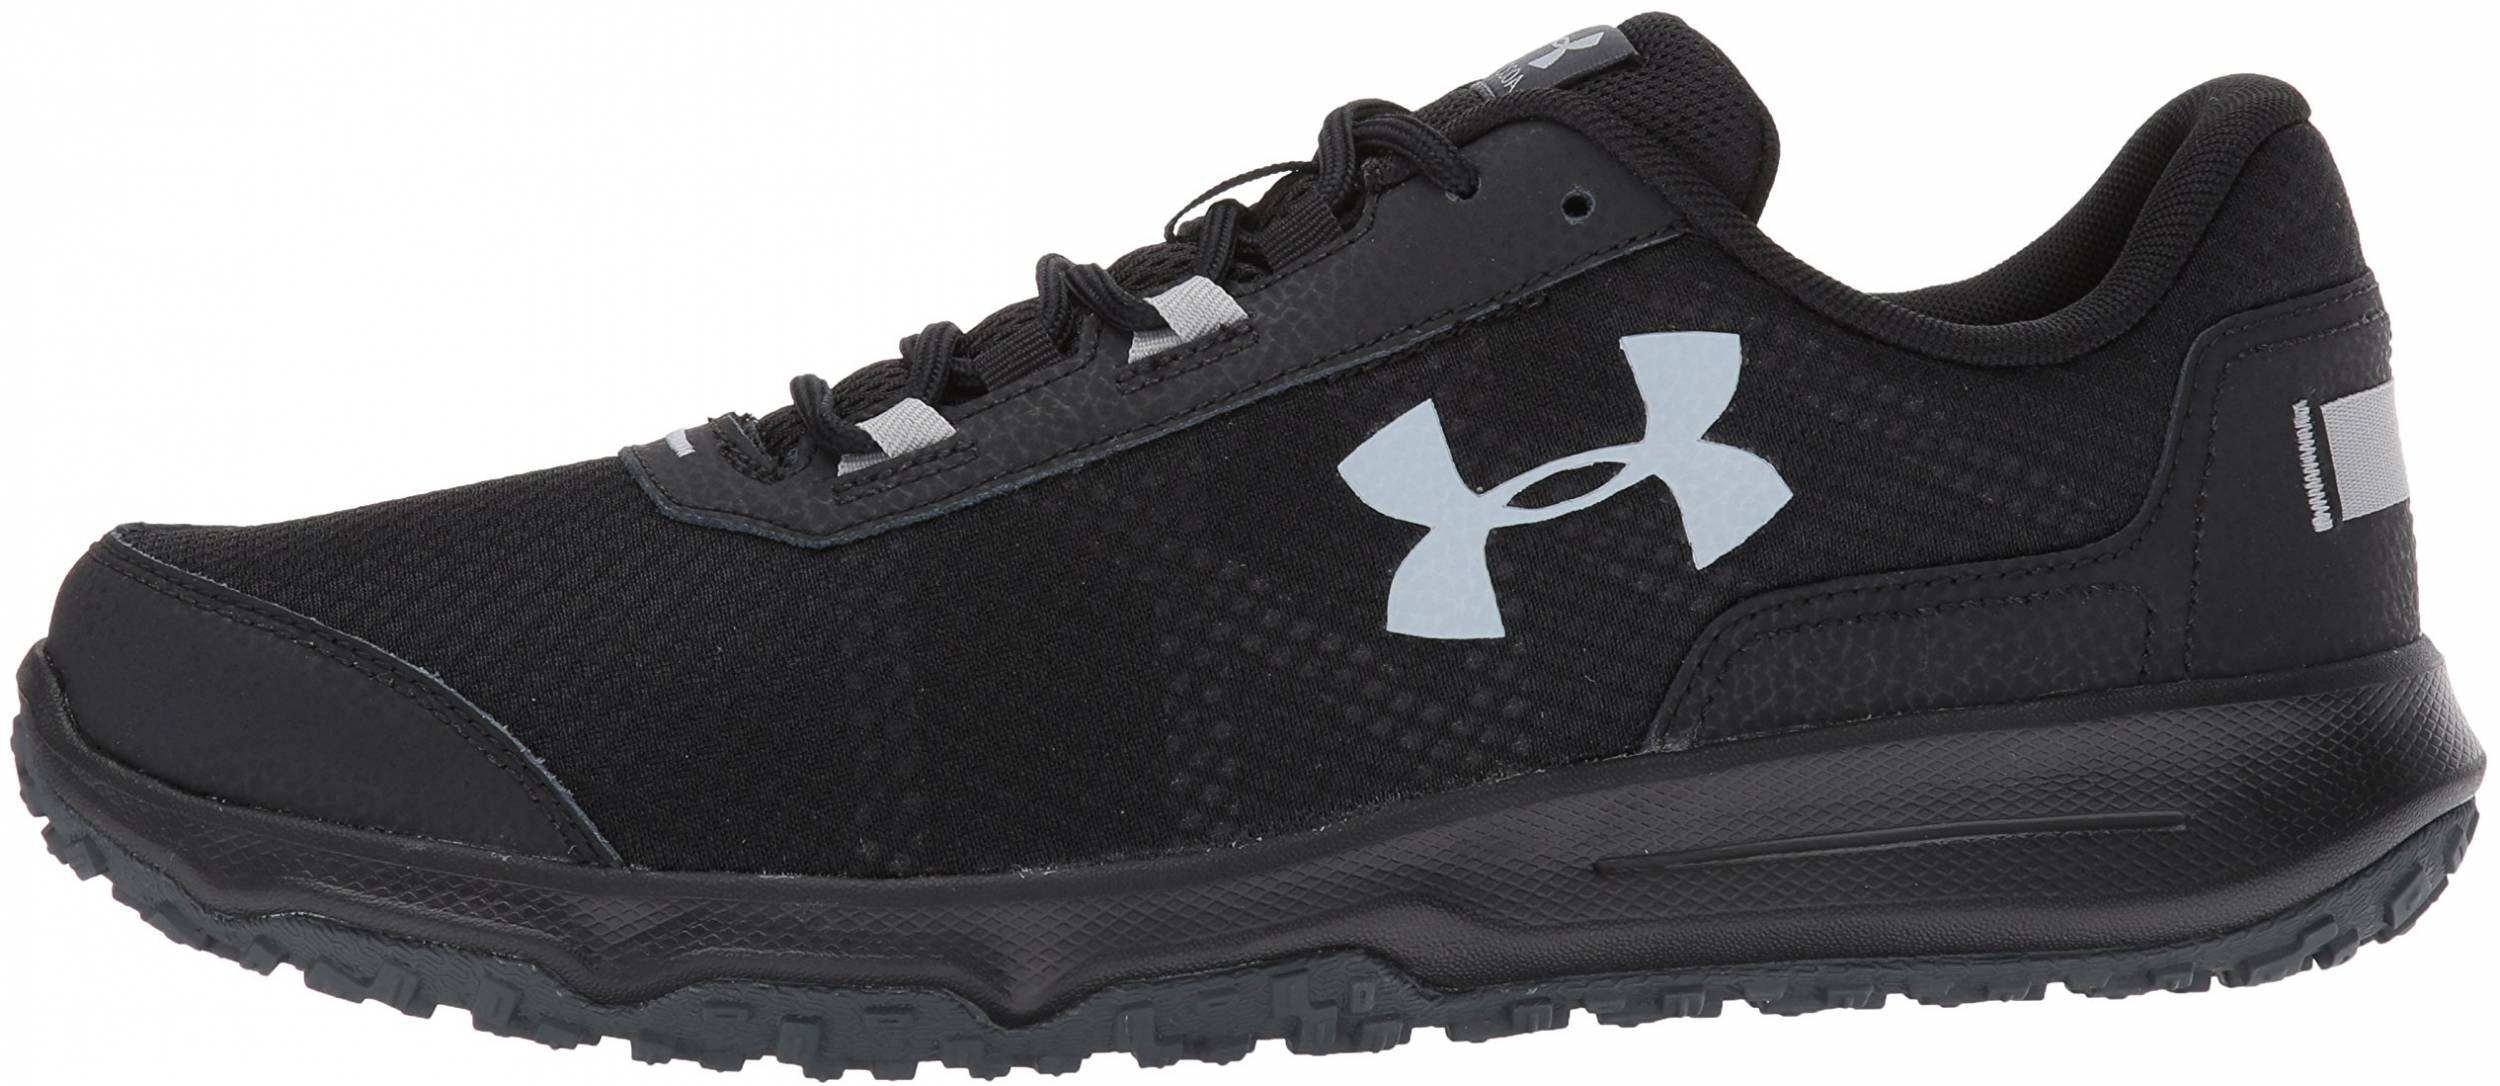 $110 + Review of Under Armour Toccoa